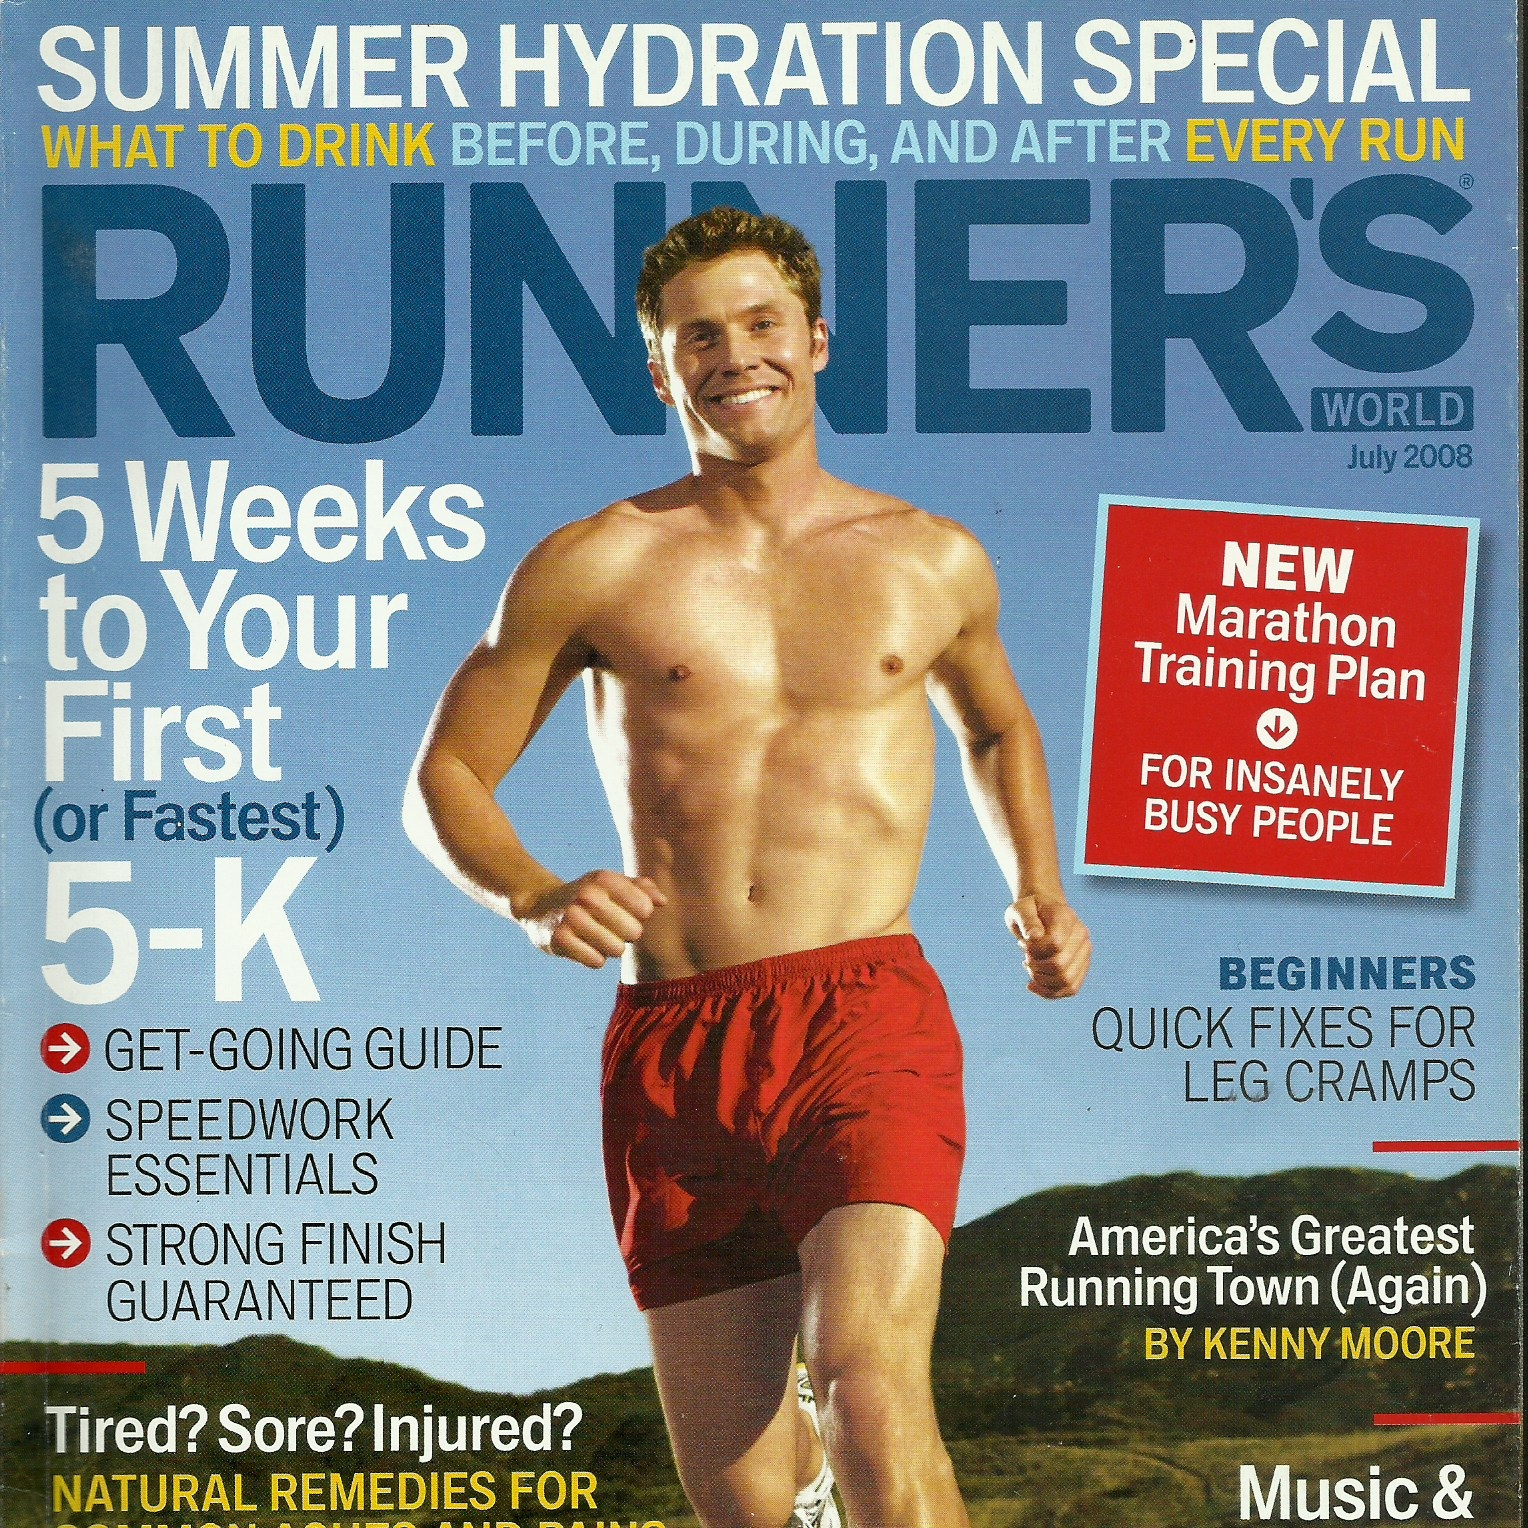 """""""Stroking movements flush out the waste products and dilate blood vessels so oxygen and nutrients flow more quickly to speed recovery."""" - ARTICLE: """"Natural Cures. Can alternative remedies offer runners a better route to Pain Relief?""""BY: Betsy Noxon"""